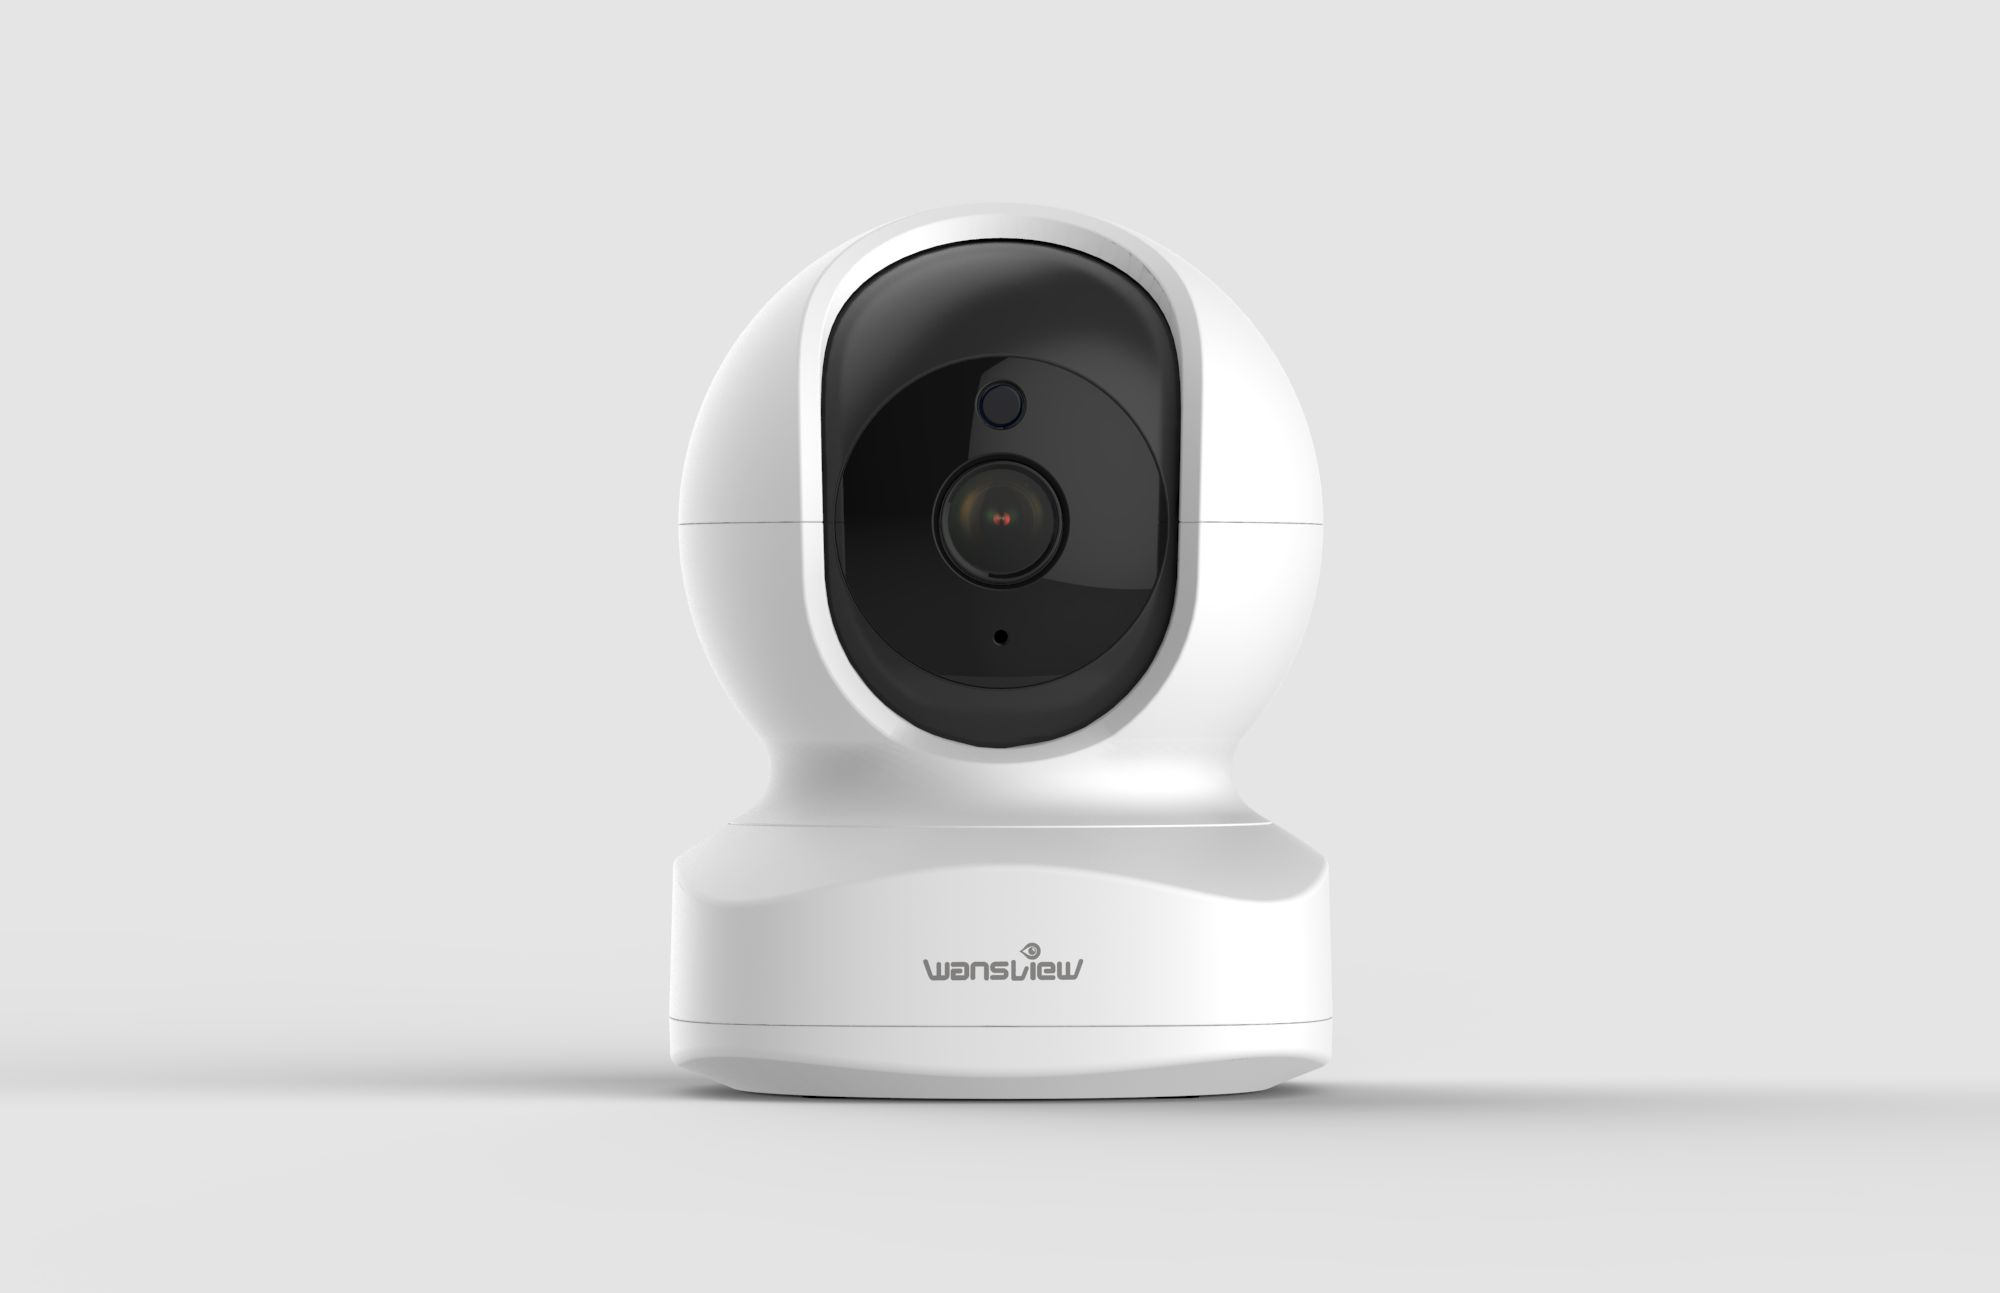 How about this wireless surveillance camera?